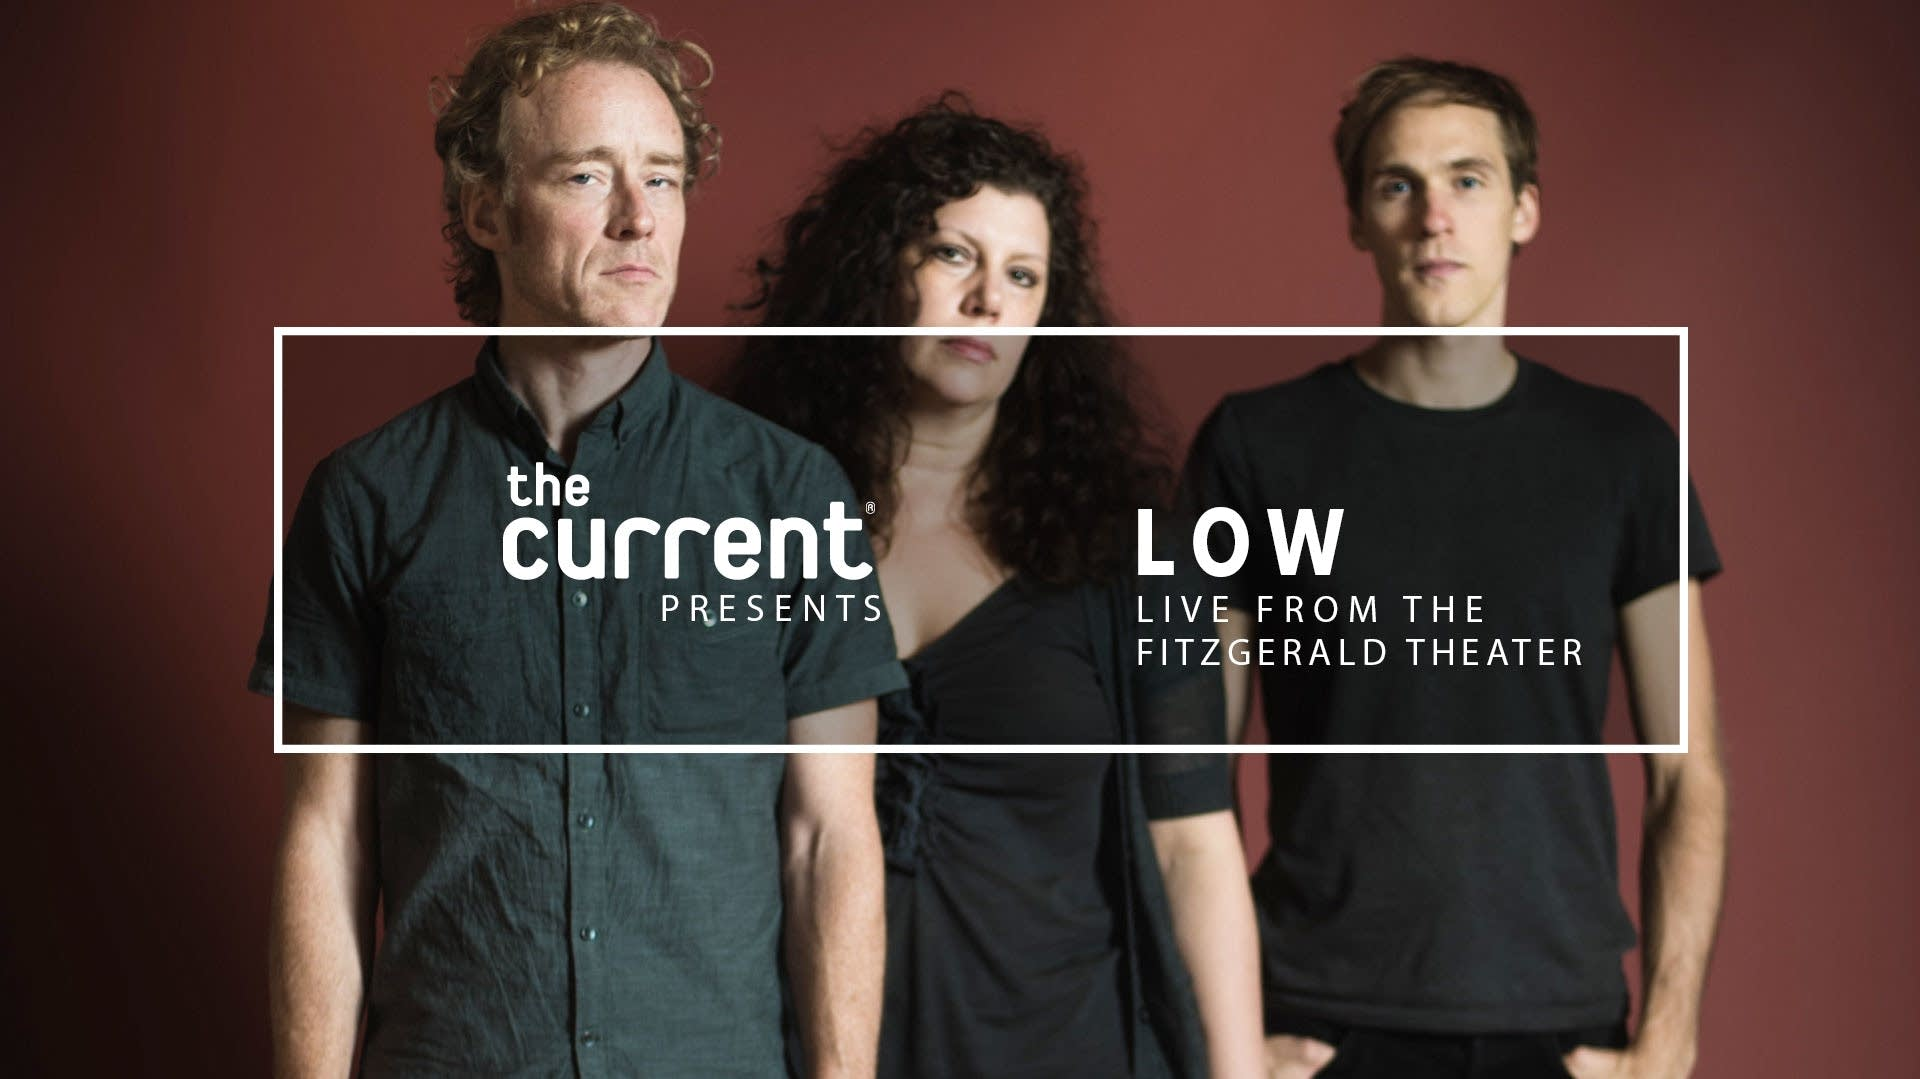 Low Live at the Fitzgerald Theater slate